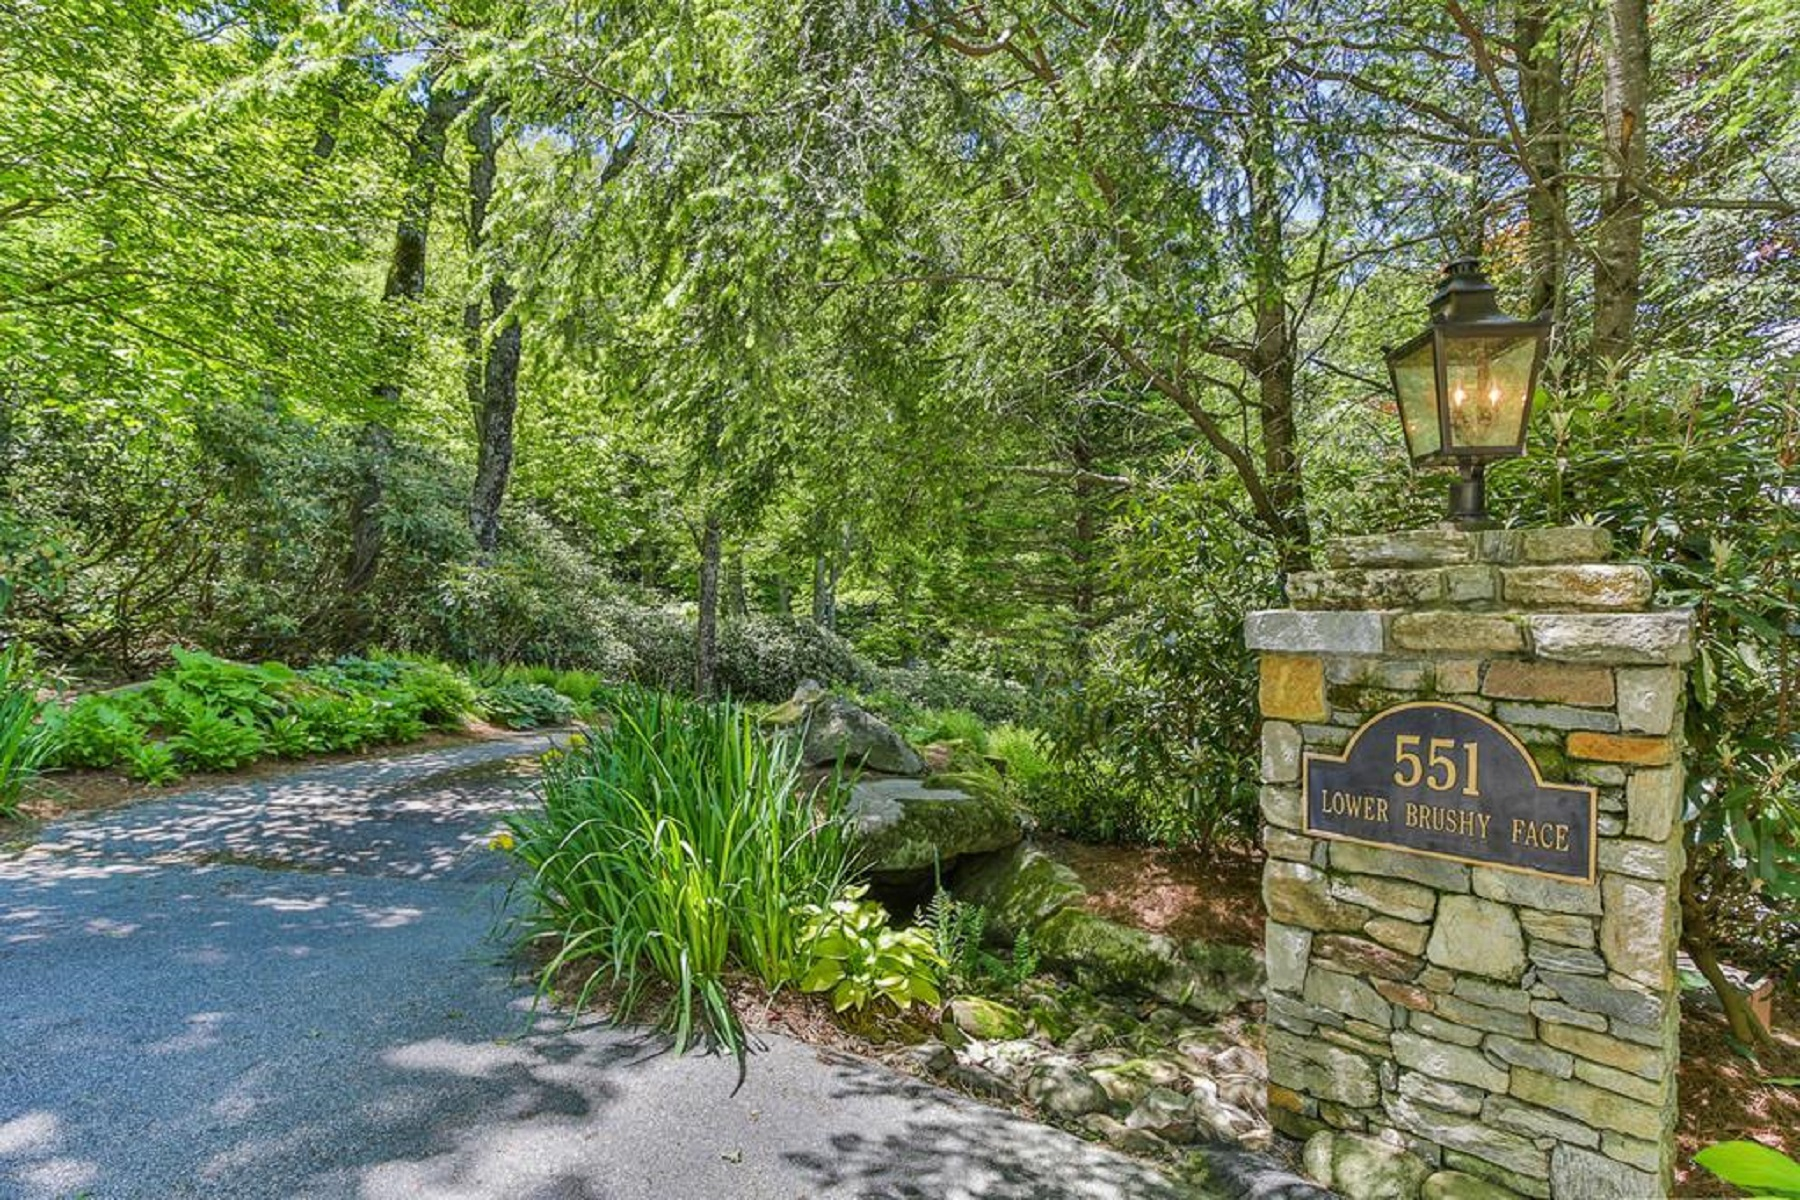 Single Family Homes for Active at 551 Lower Brushy Face Road Highlands, North Carolina 28741 United States